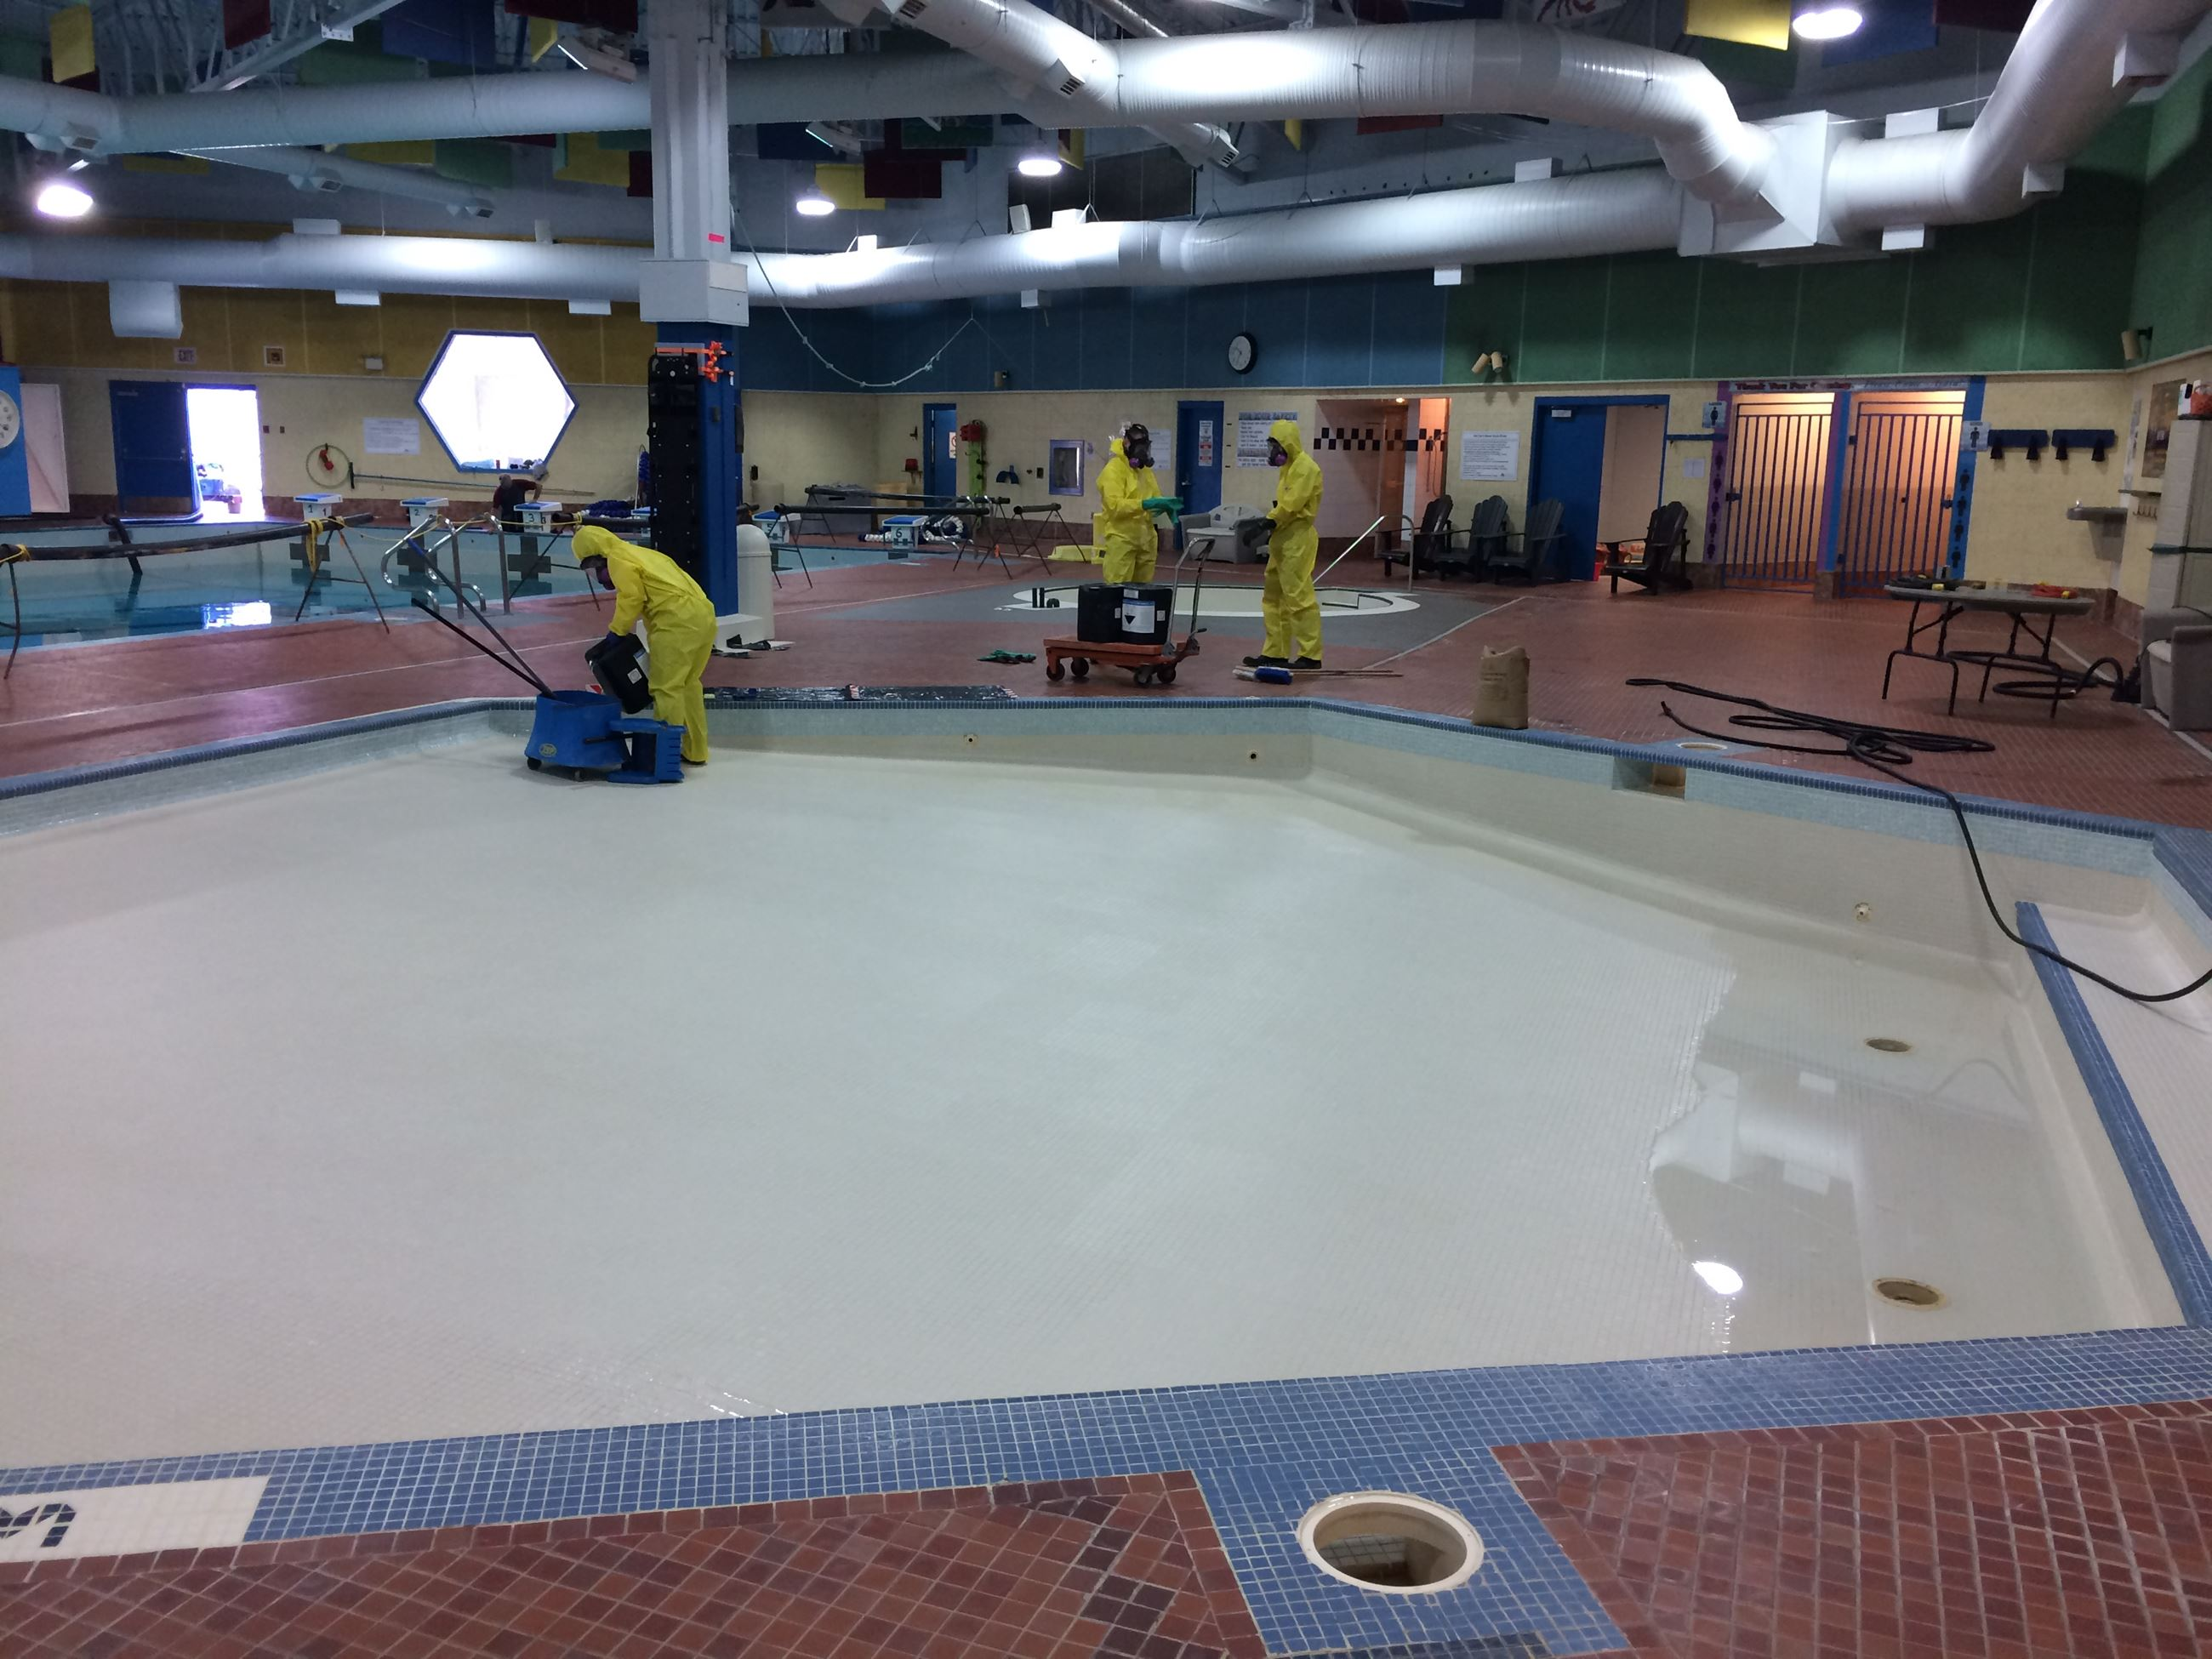 Preparing to acid wash the play pool basin as main pool drains